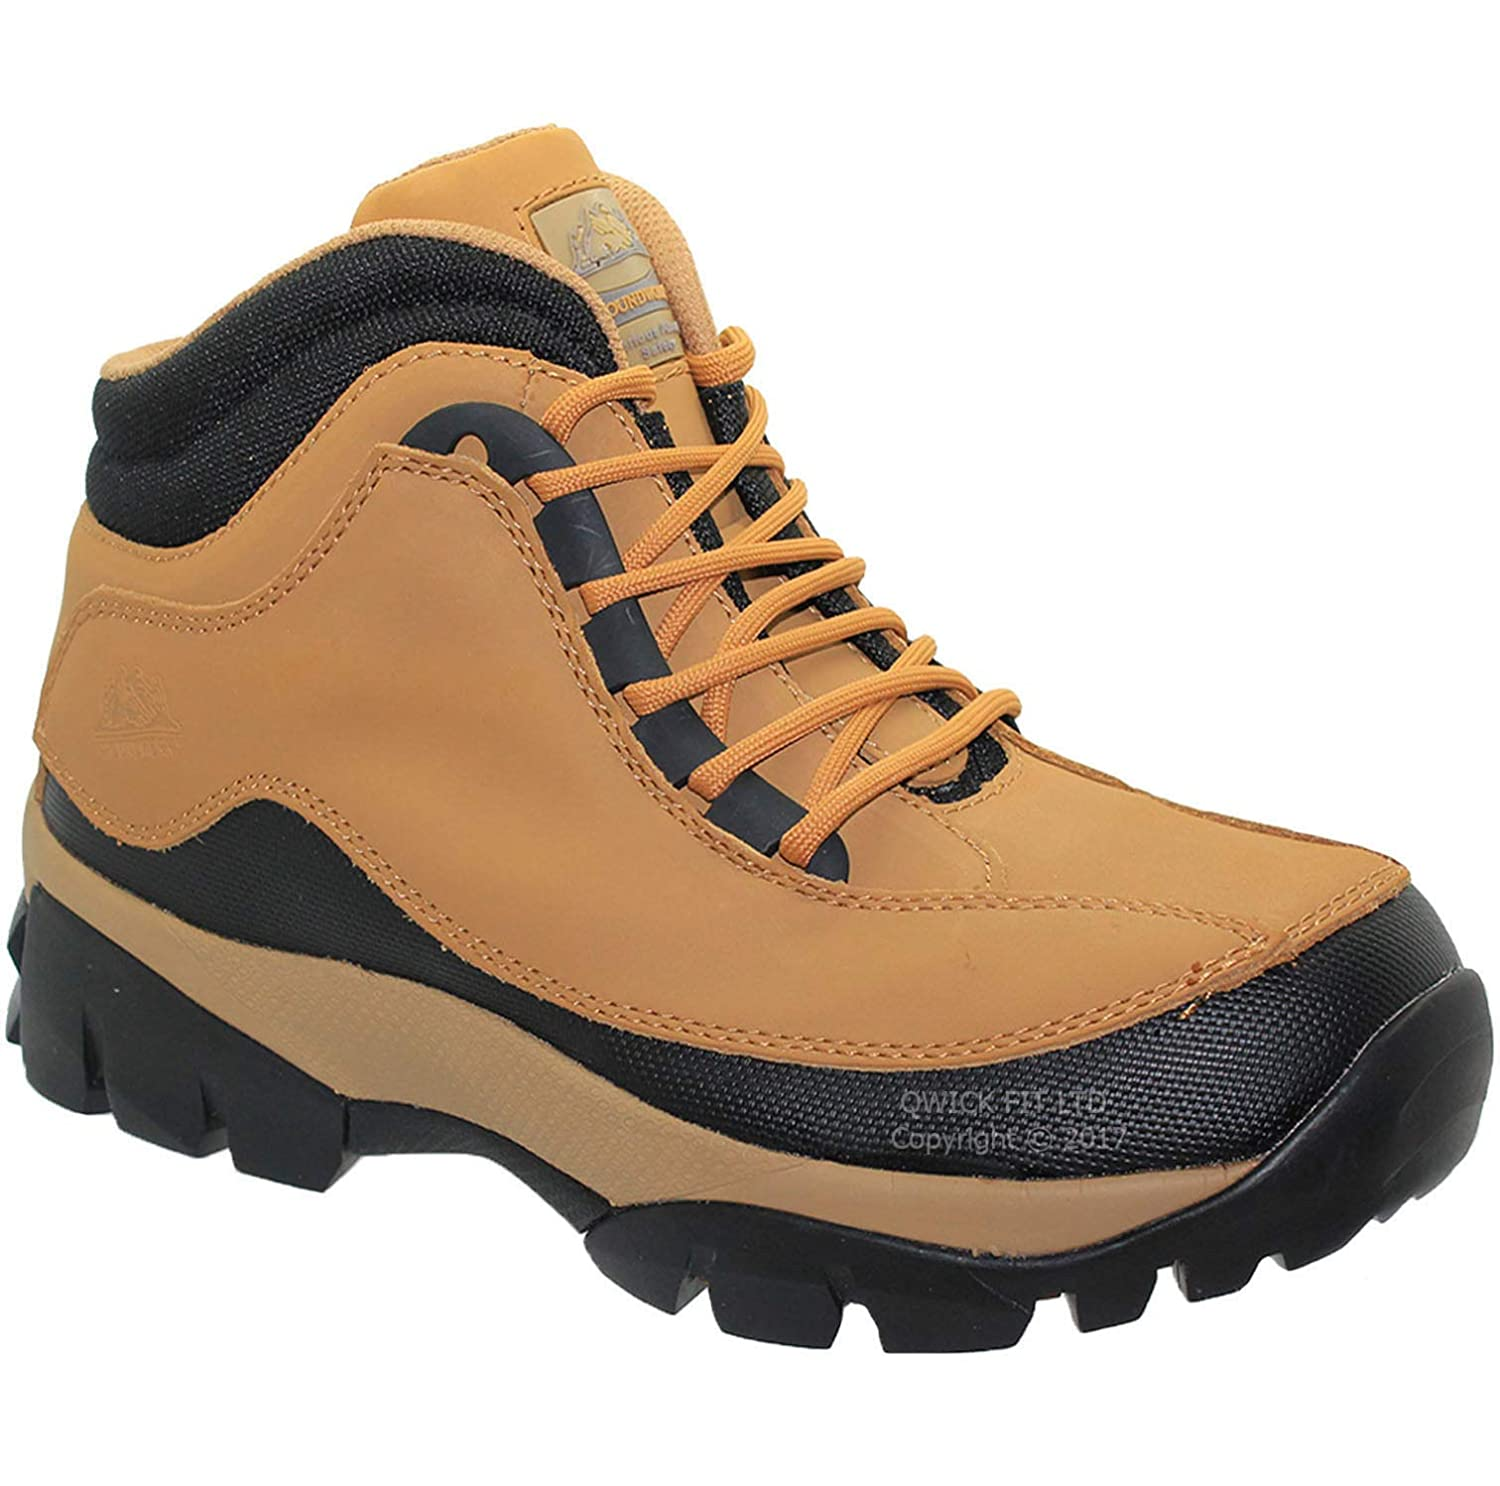 PPE MENS LADIES WOMENS GROUNDWORK STEEL TOE CAP SAFETY WORK BOOTS SHOES TRAINERS